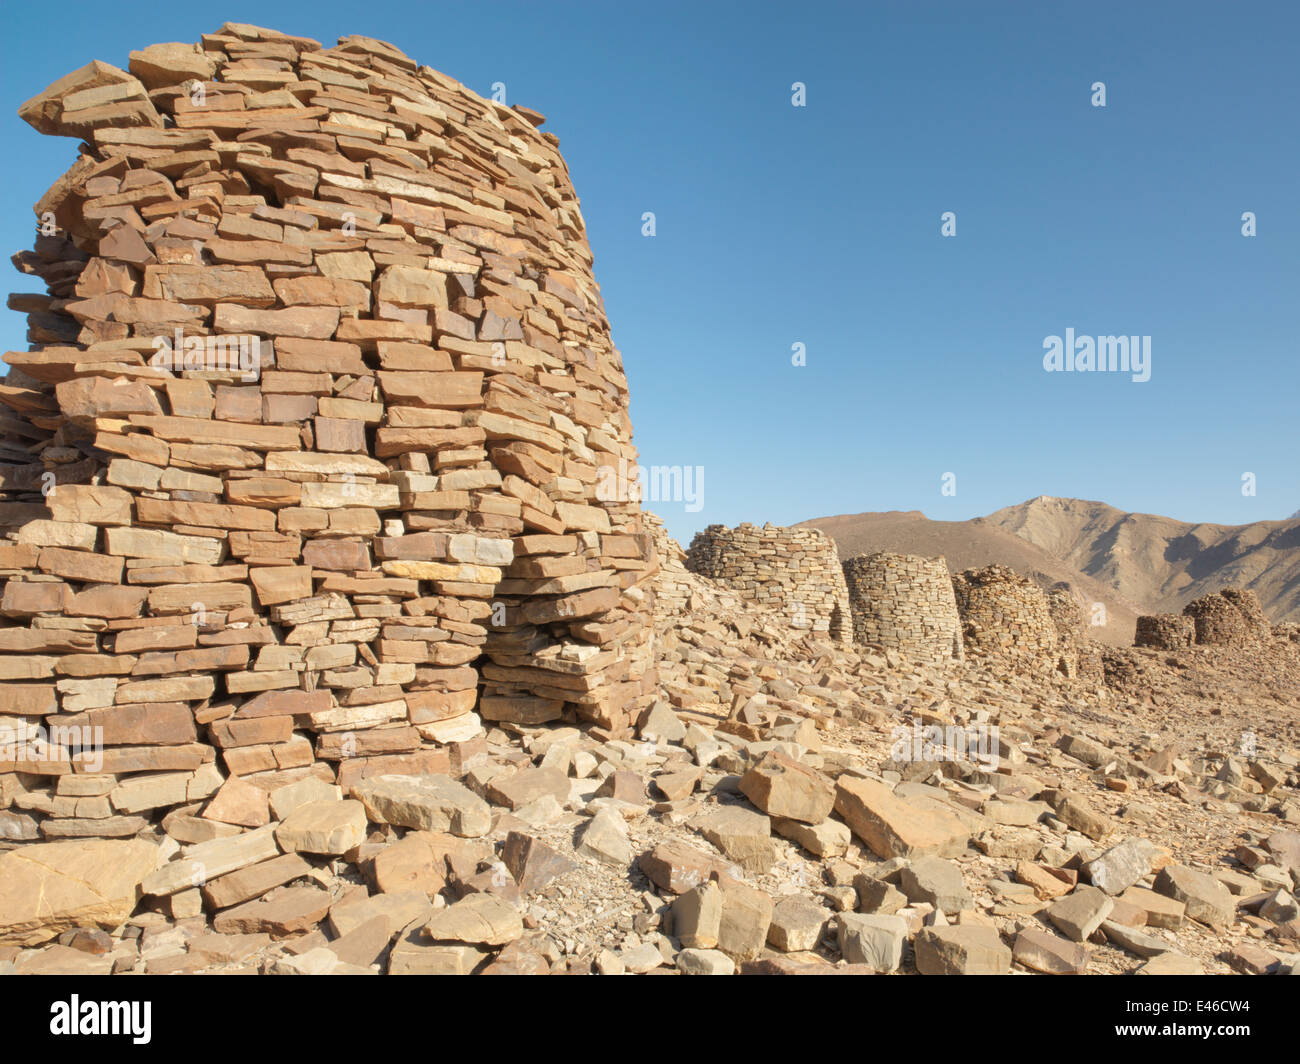 UNESCO World Heritage site in Oman Middle East. Ancient Beehive tombs on a ridge top in the Hajjar mountains near - Stock Image